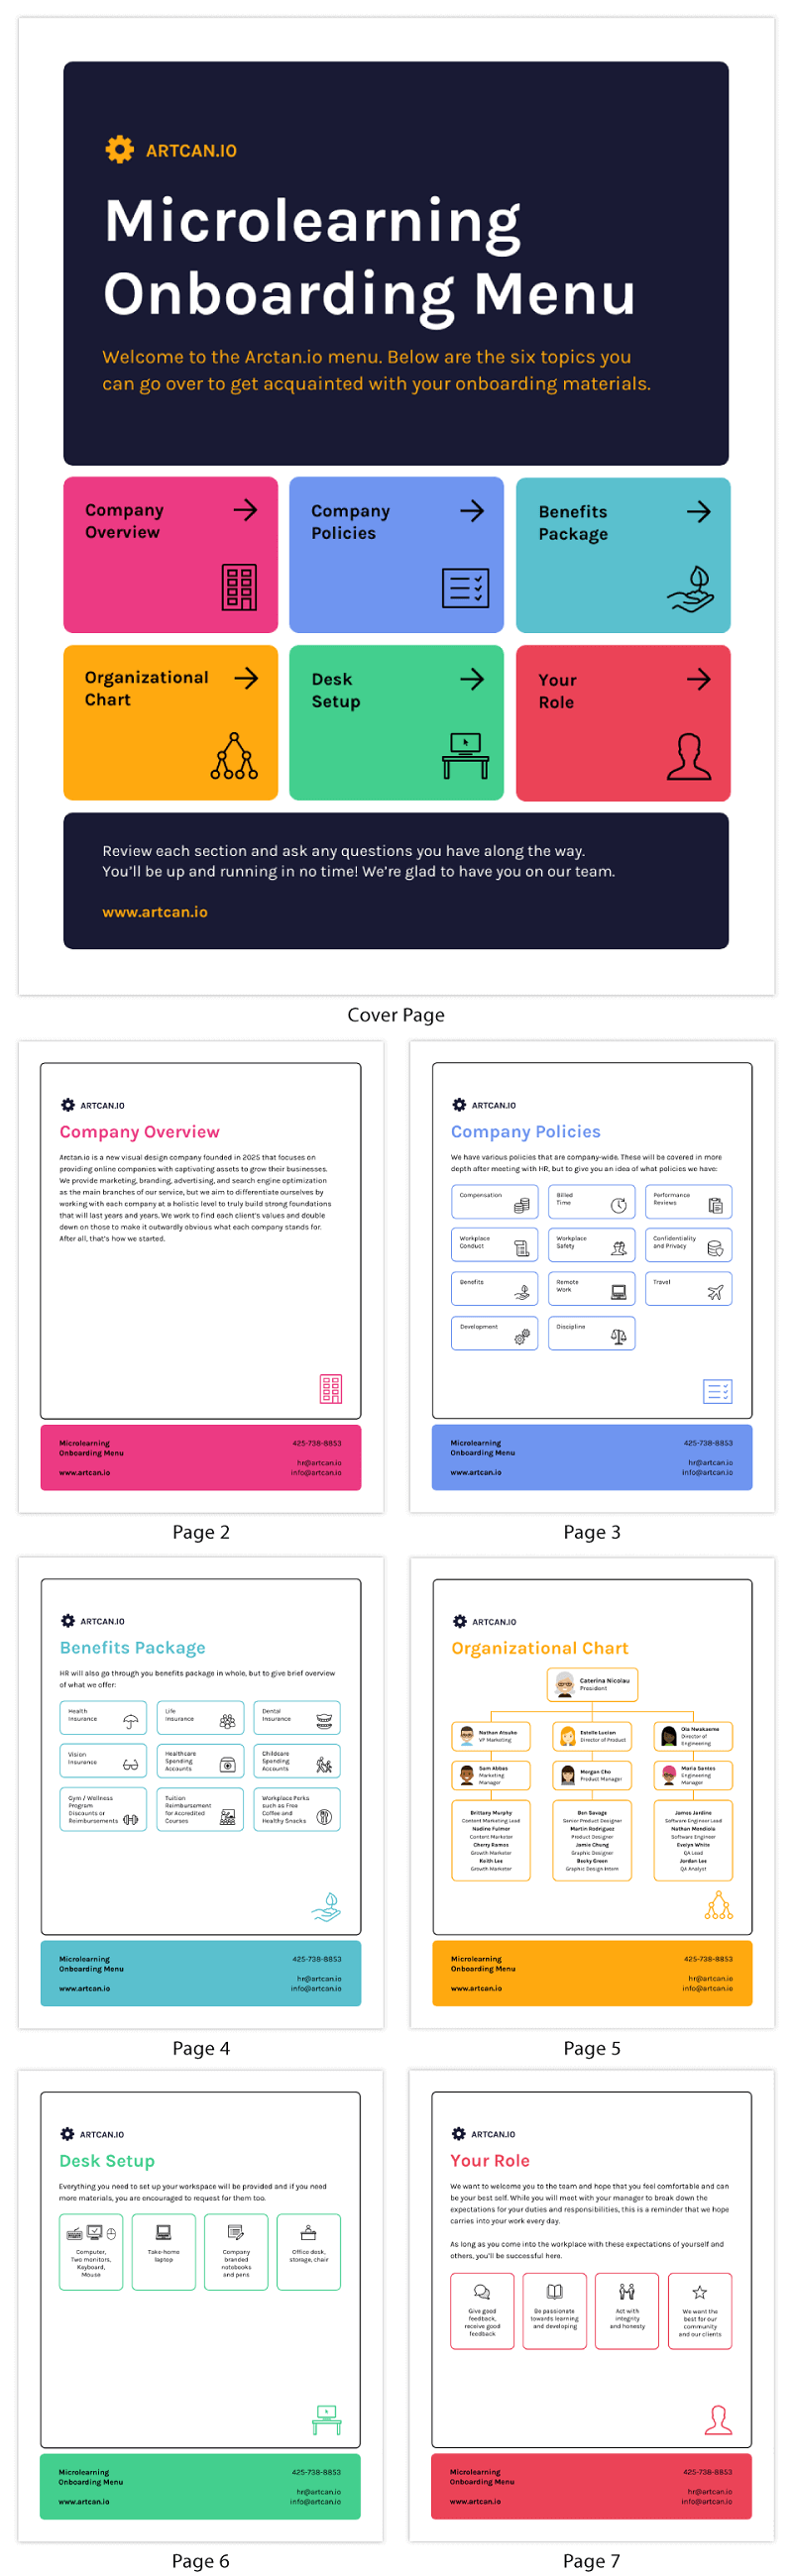 Microlearning Onboarding Menu Materials Template